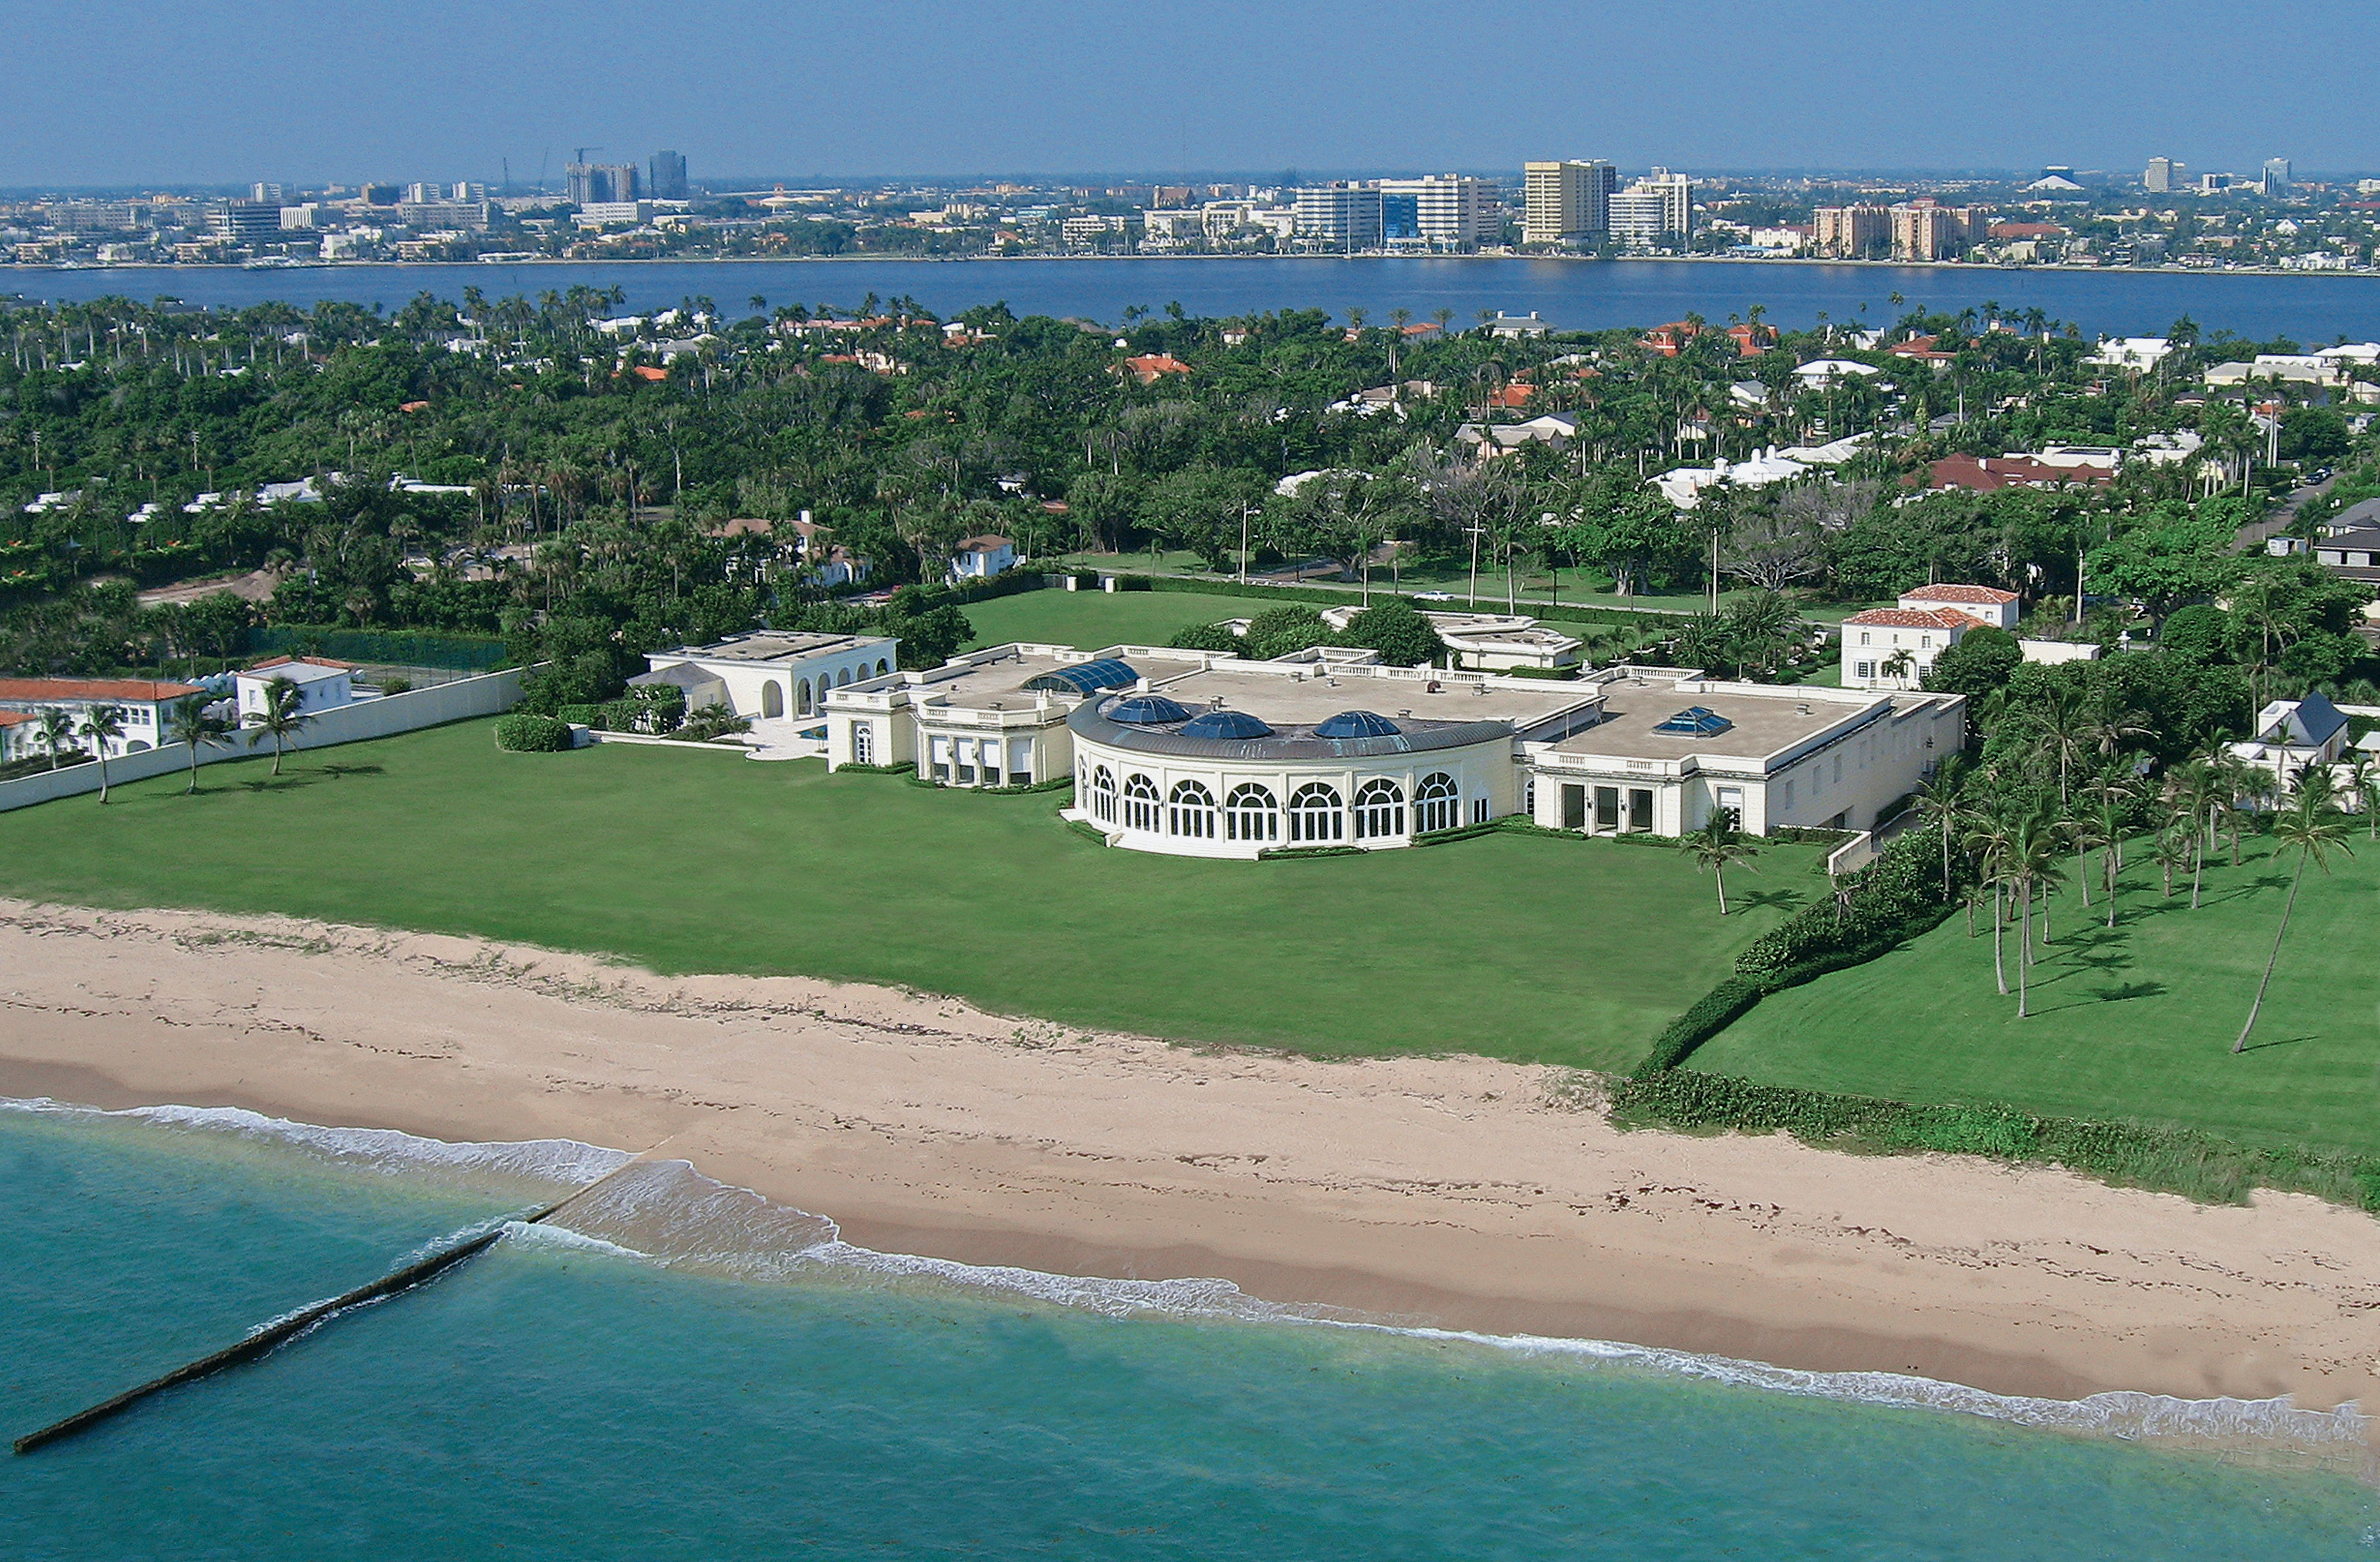 Maison de lamitie this single family home was the most expensive home ever fought over in a divorce case donald trumps of course